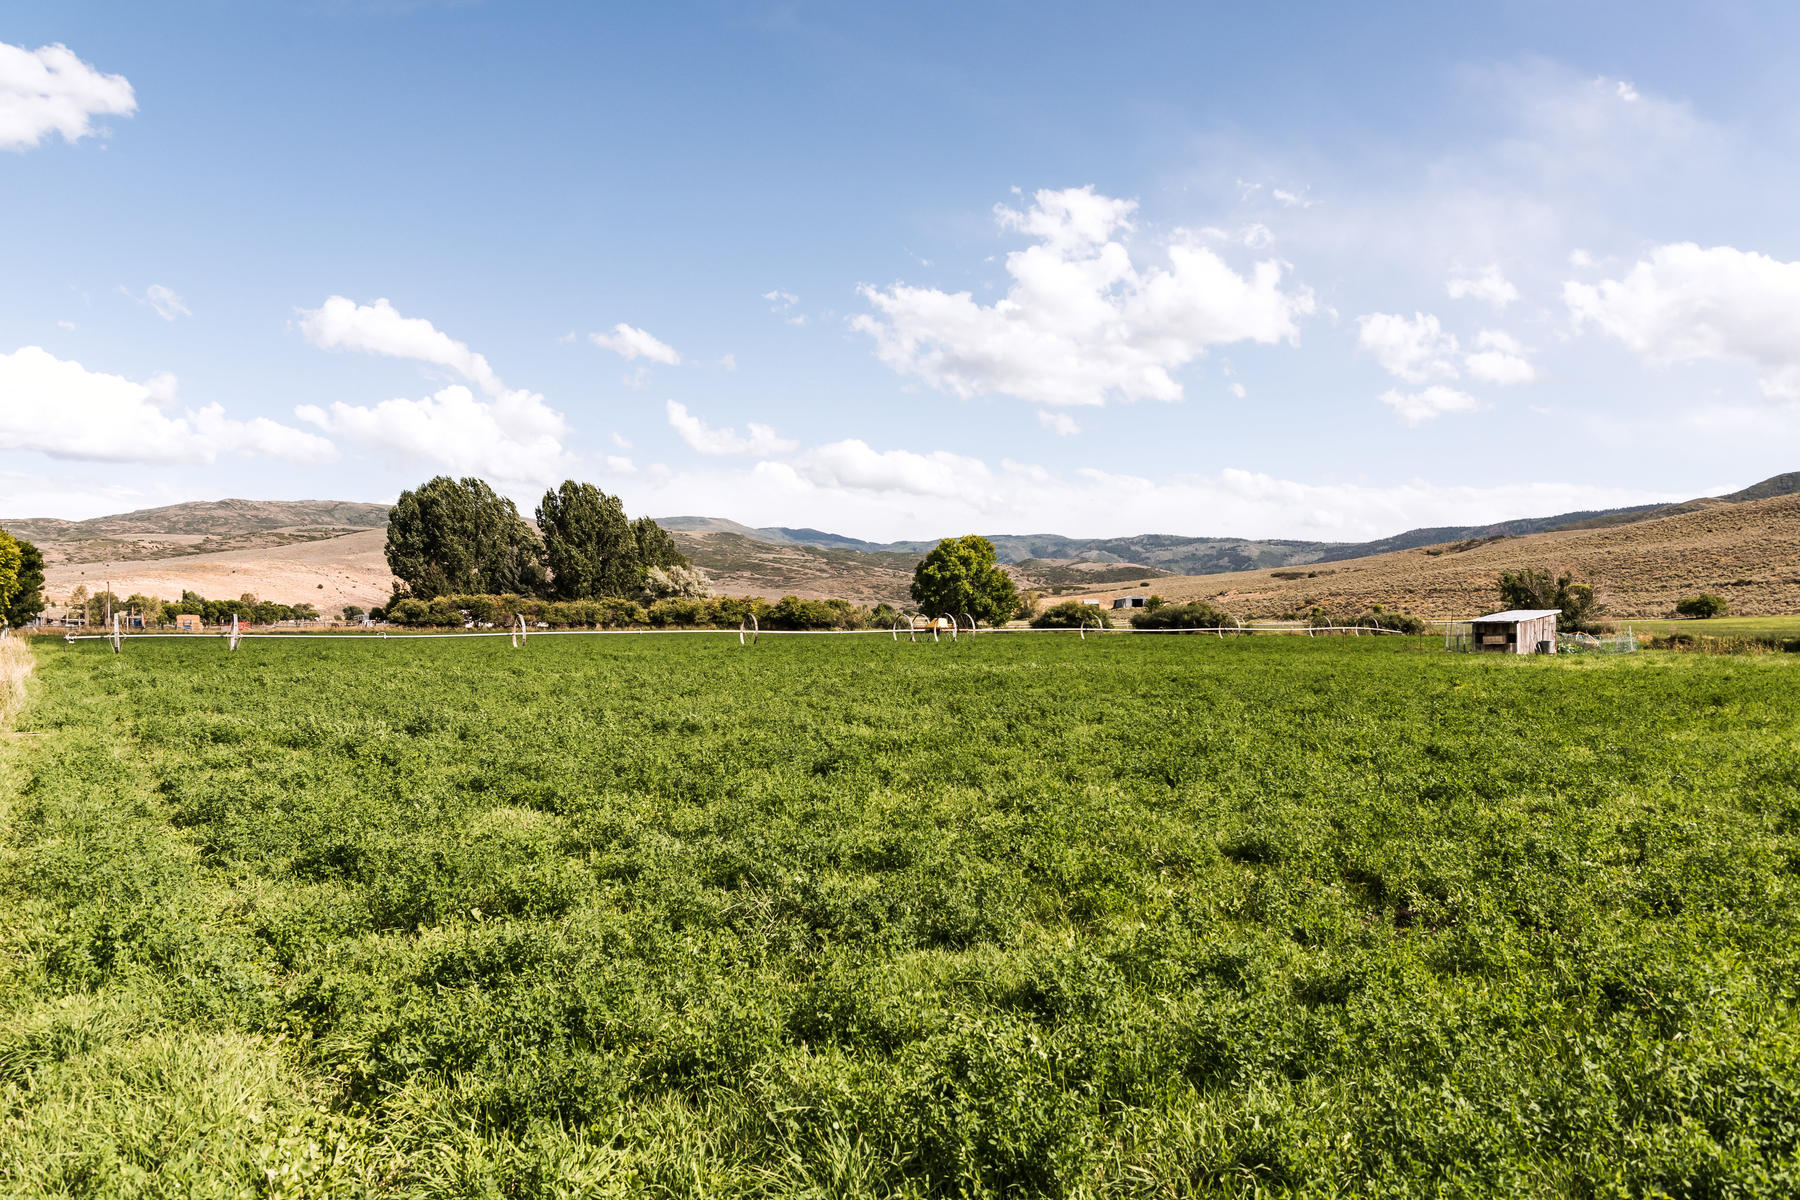 Land for Sale at Center Creek Gentleman's Farm or Ranch Land 3700 E Center Creek Rd, Heber, Utah 84032 United States